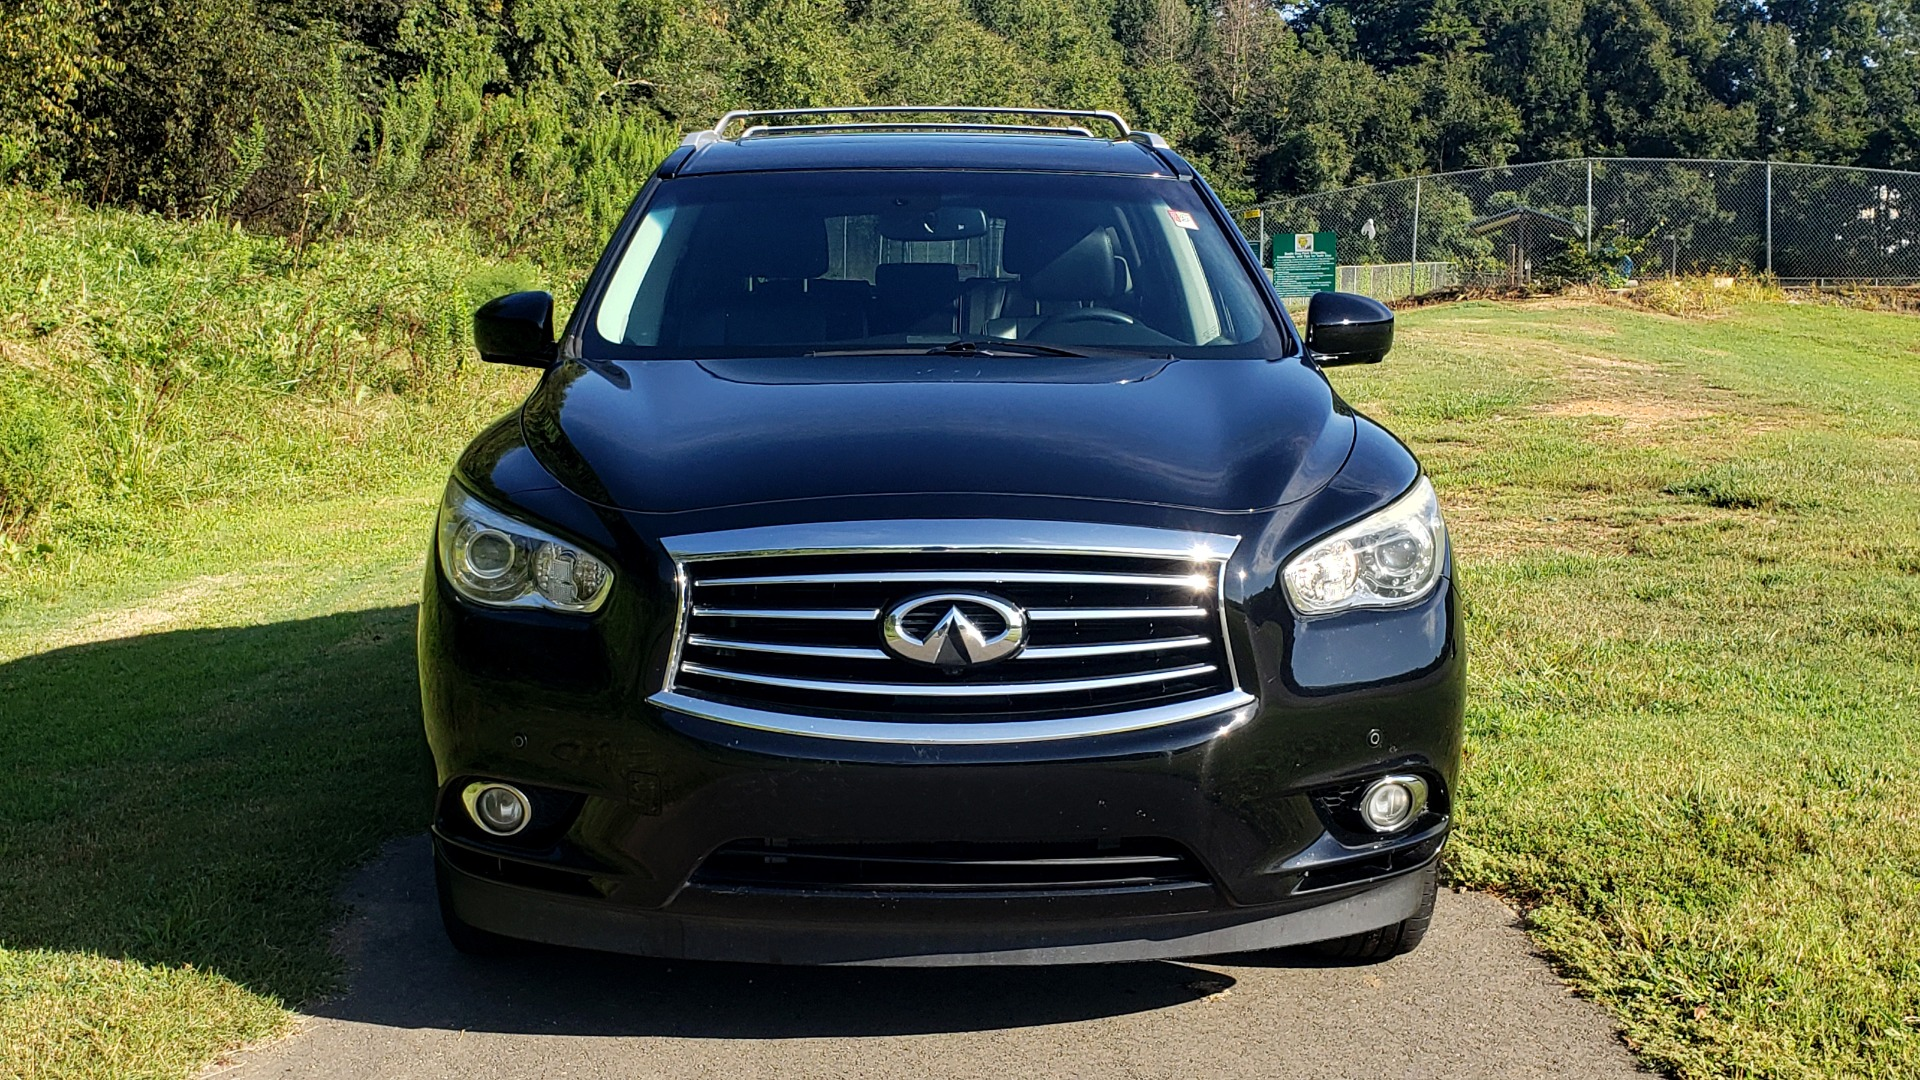 Used 2015 INFINITI QX60 AWD / PREM PLUS PKG / NAV / SUNROOF / BOSE / 3-ROW / REARVIEW for sale $19,695 at Formula Imports in Charlotte NC 28227 11